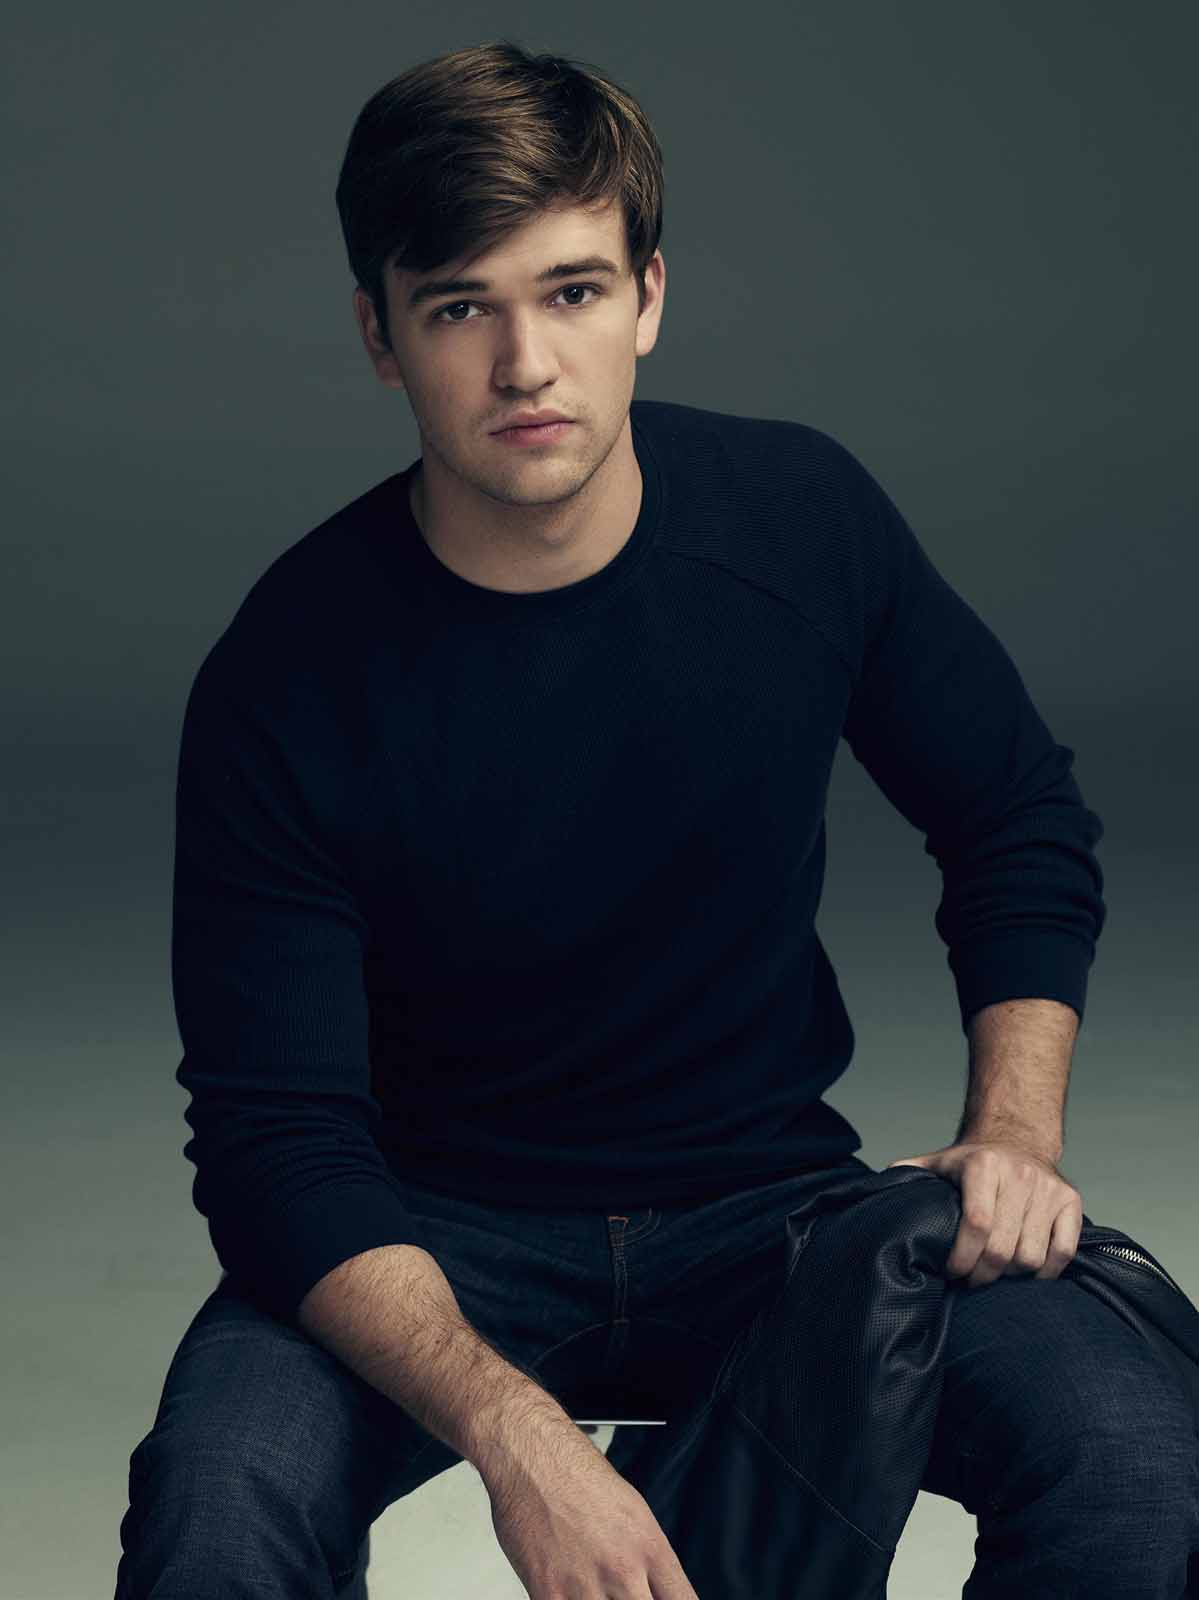 Burkely Duffield – Compare movies, TV shows & more